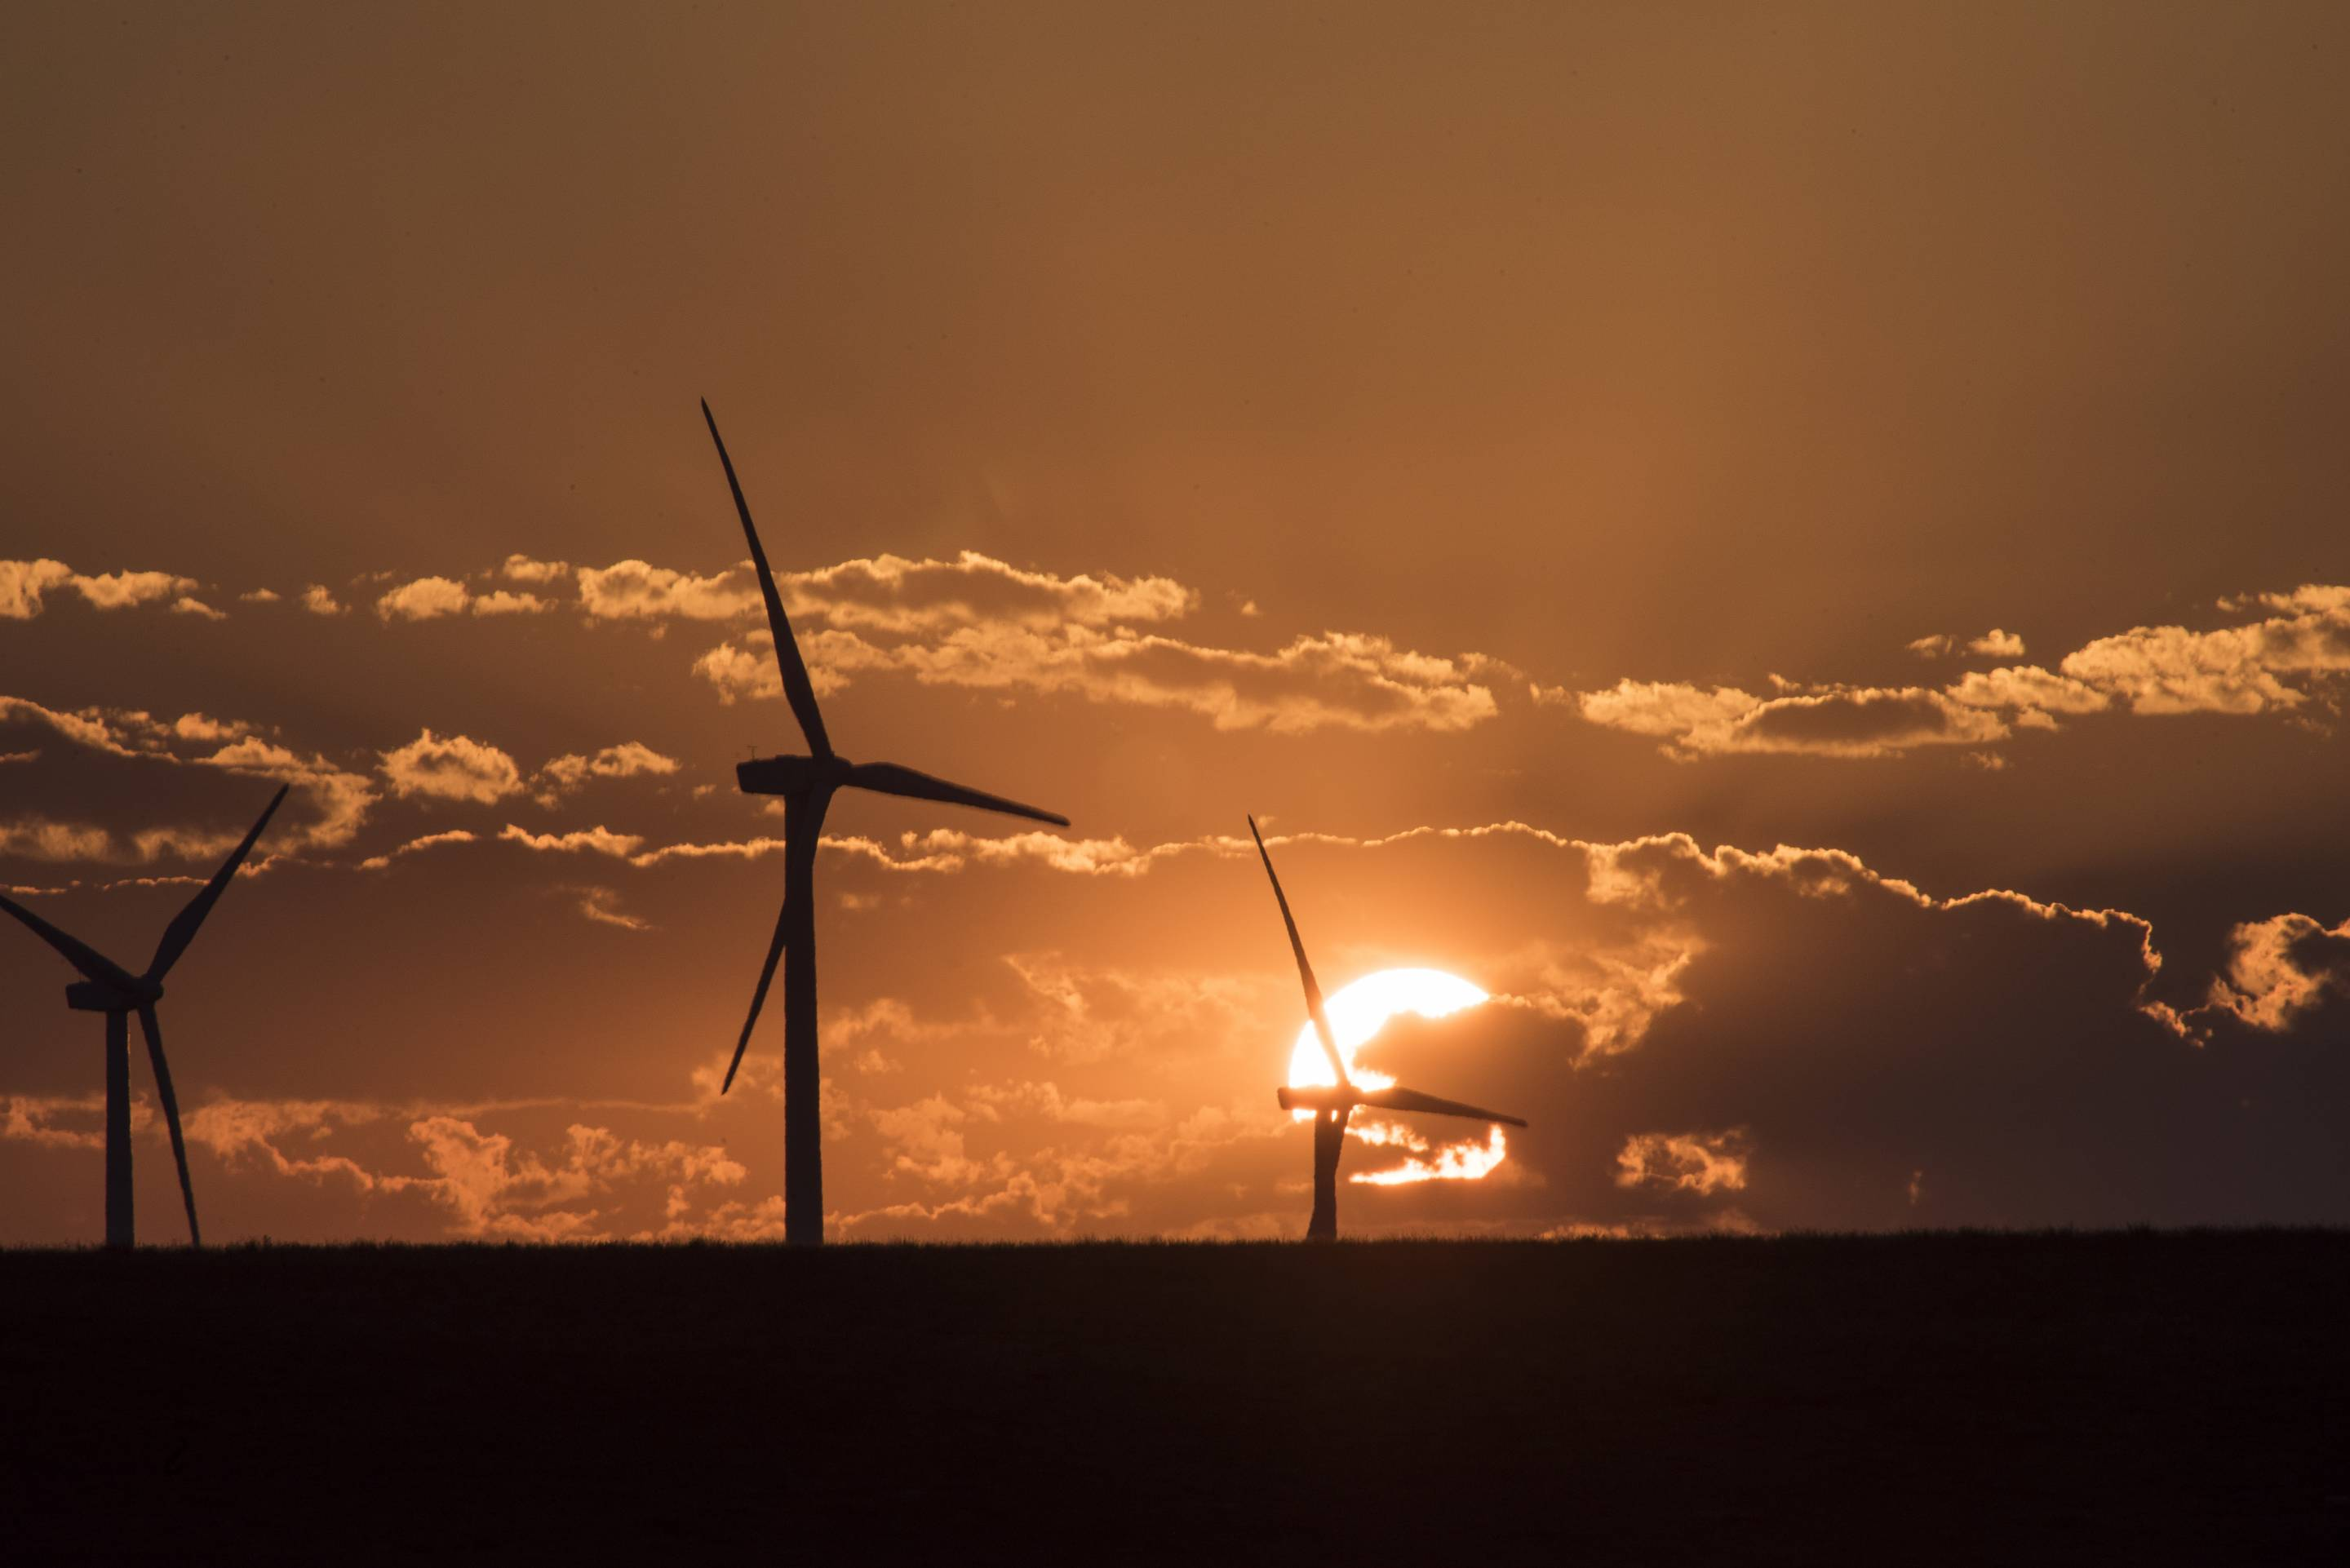 Rim Rock Wind Farm - Kevin, Montana